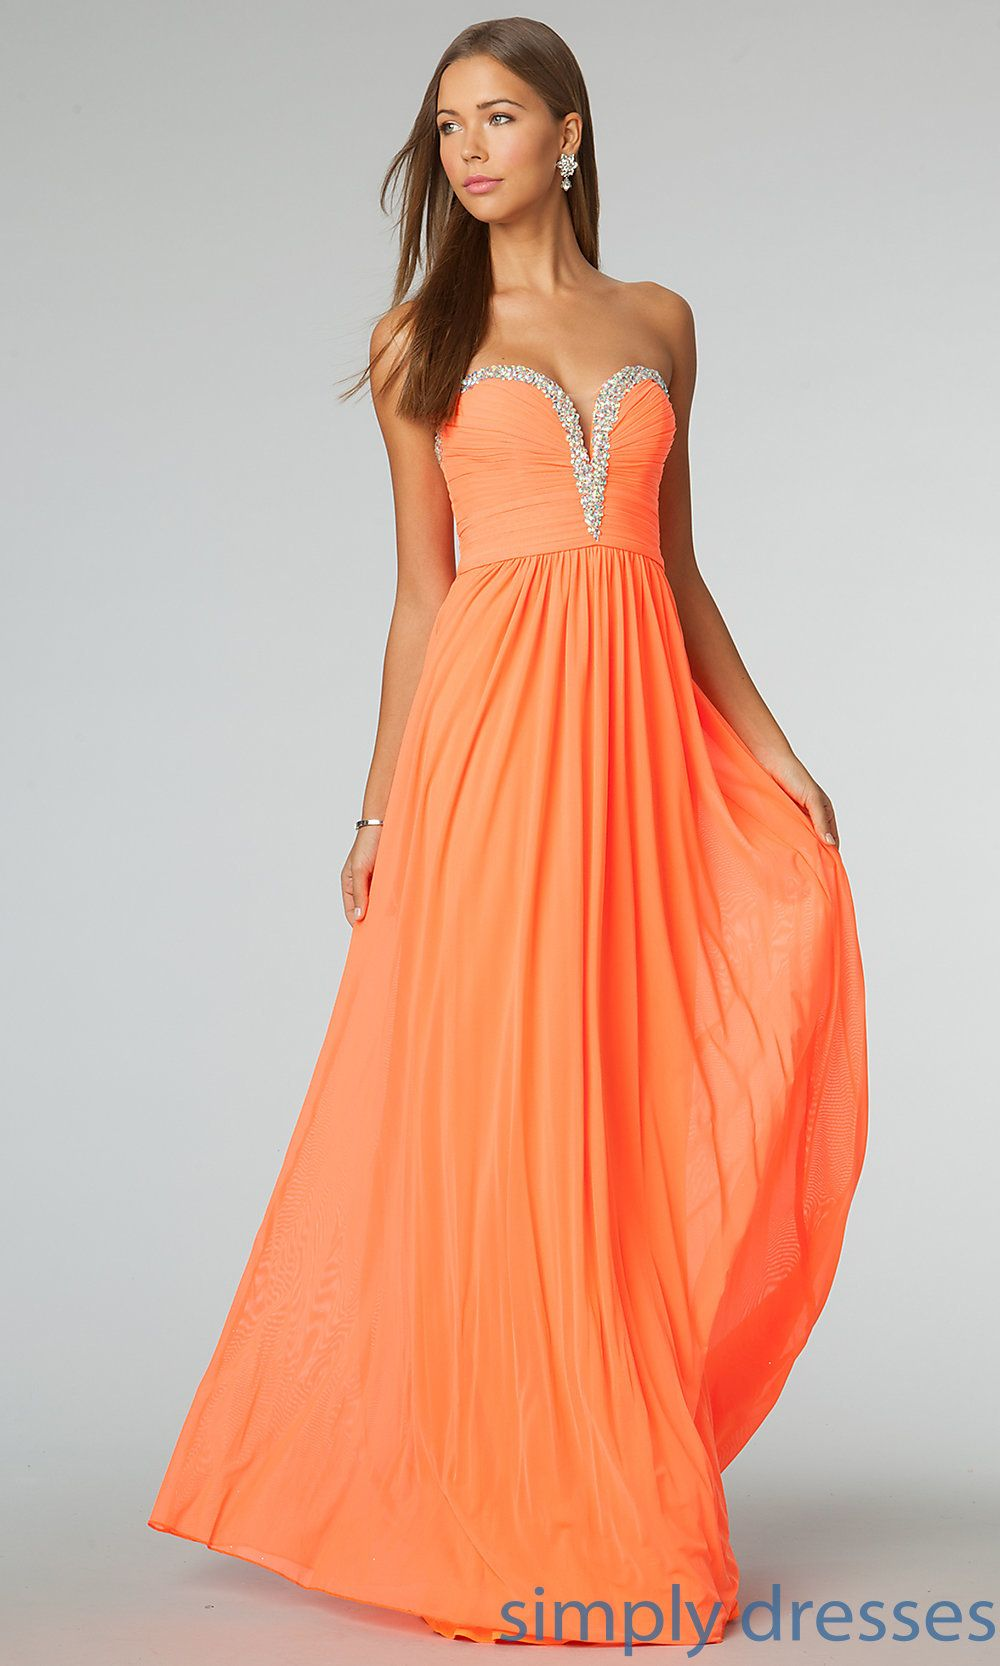 Orange Formal Dress Jovanni Bridesmaid Gown Revision Pinterest